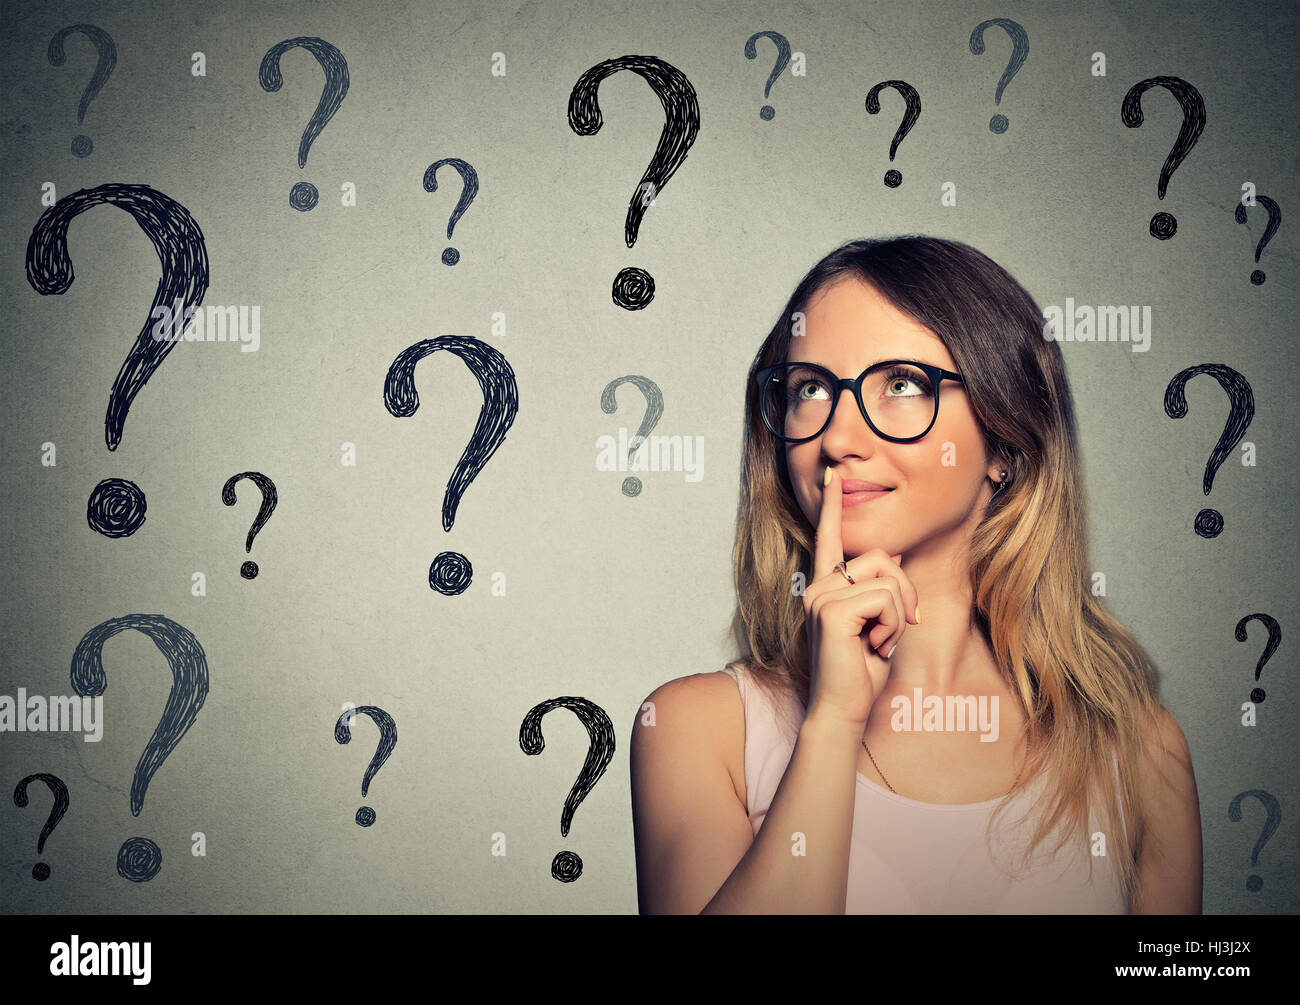 Thinking business woman with glasses looking up at many questions mark isolated on gray wall background Stock Photo